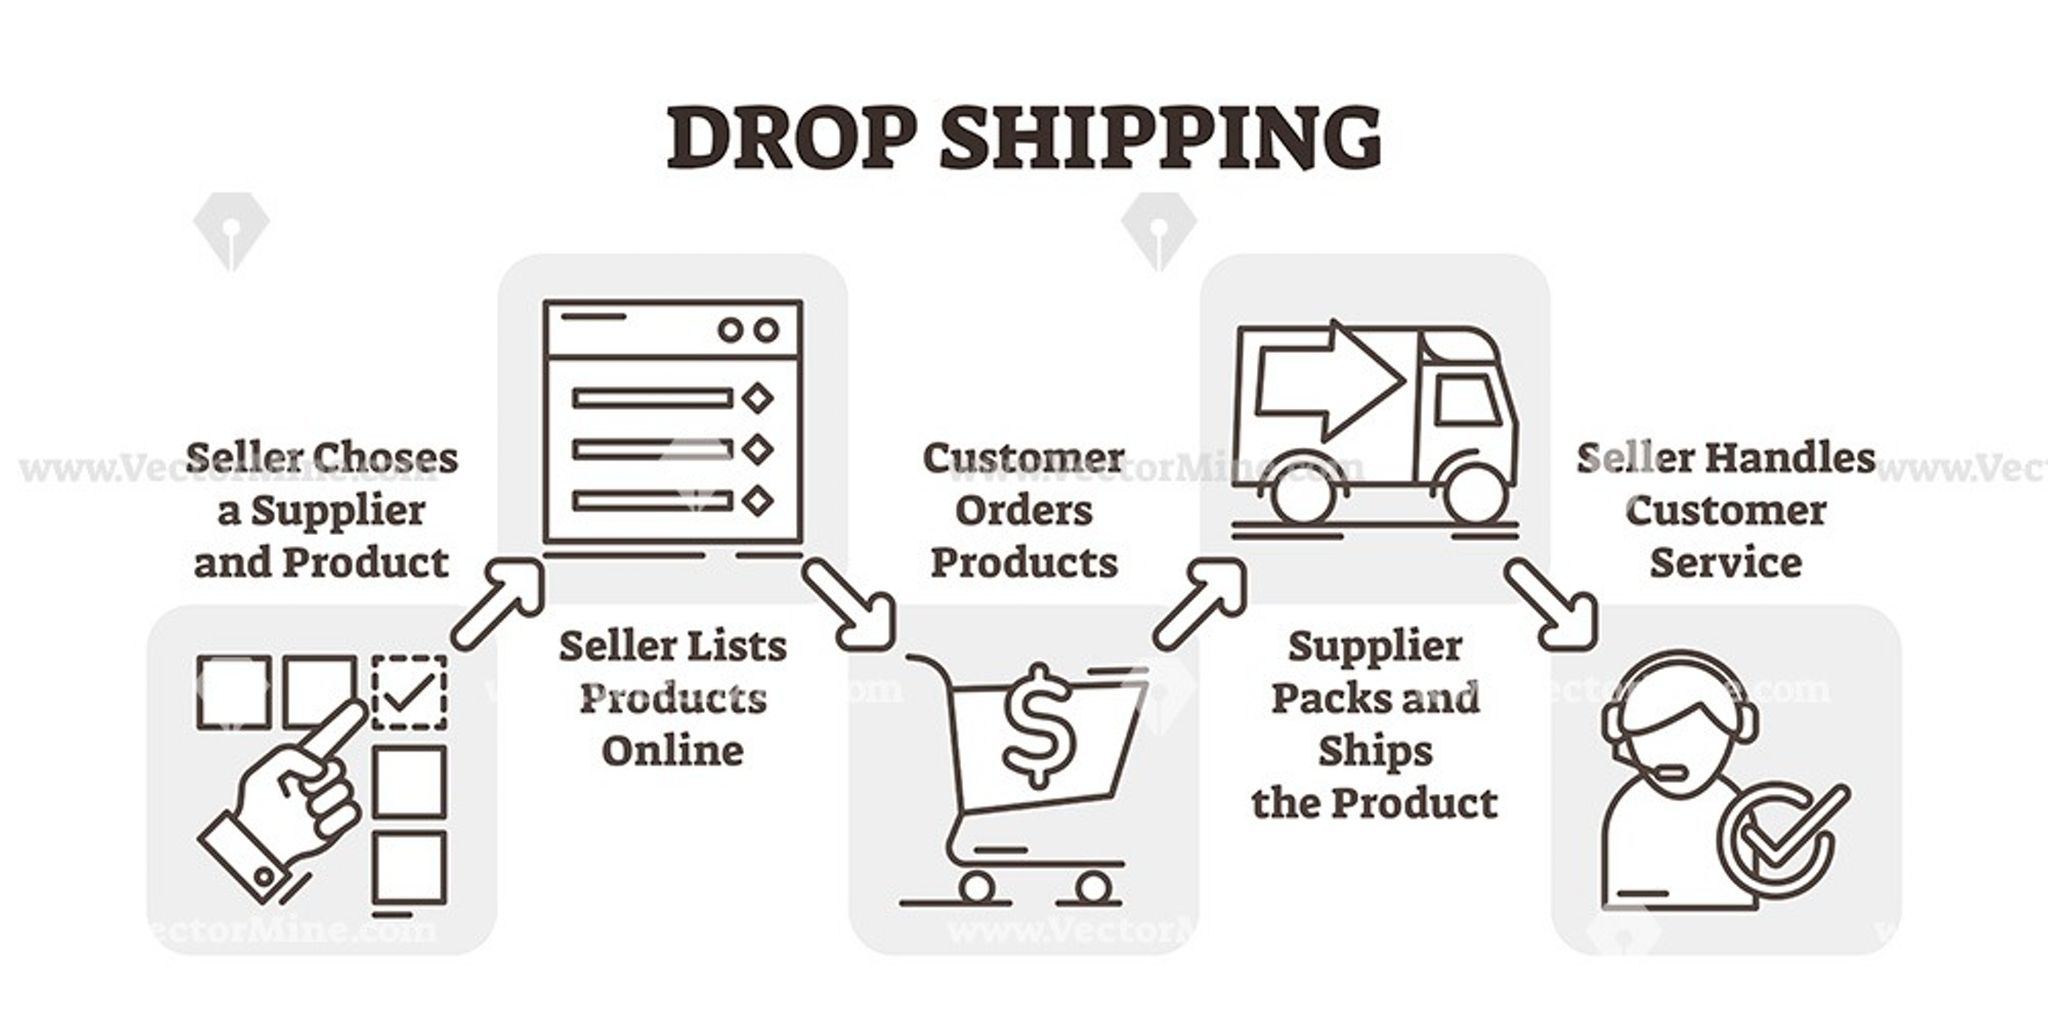 Drop shipping online business outline icon